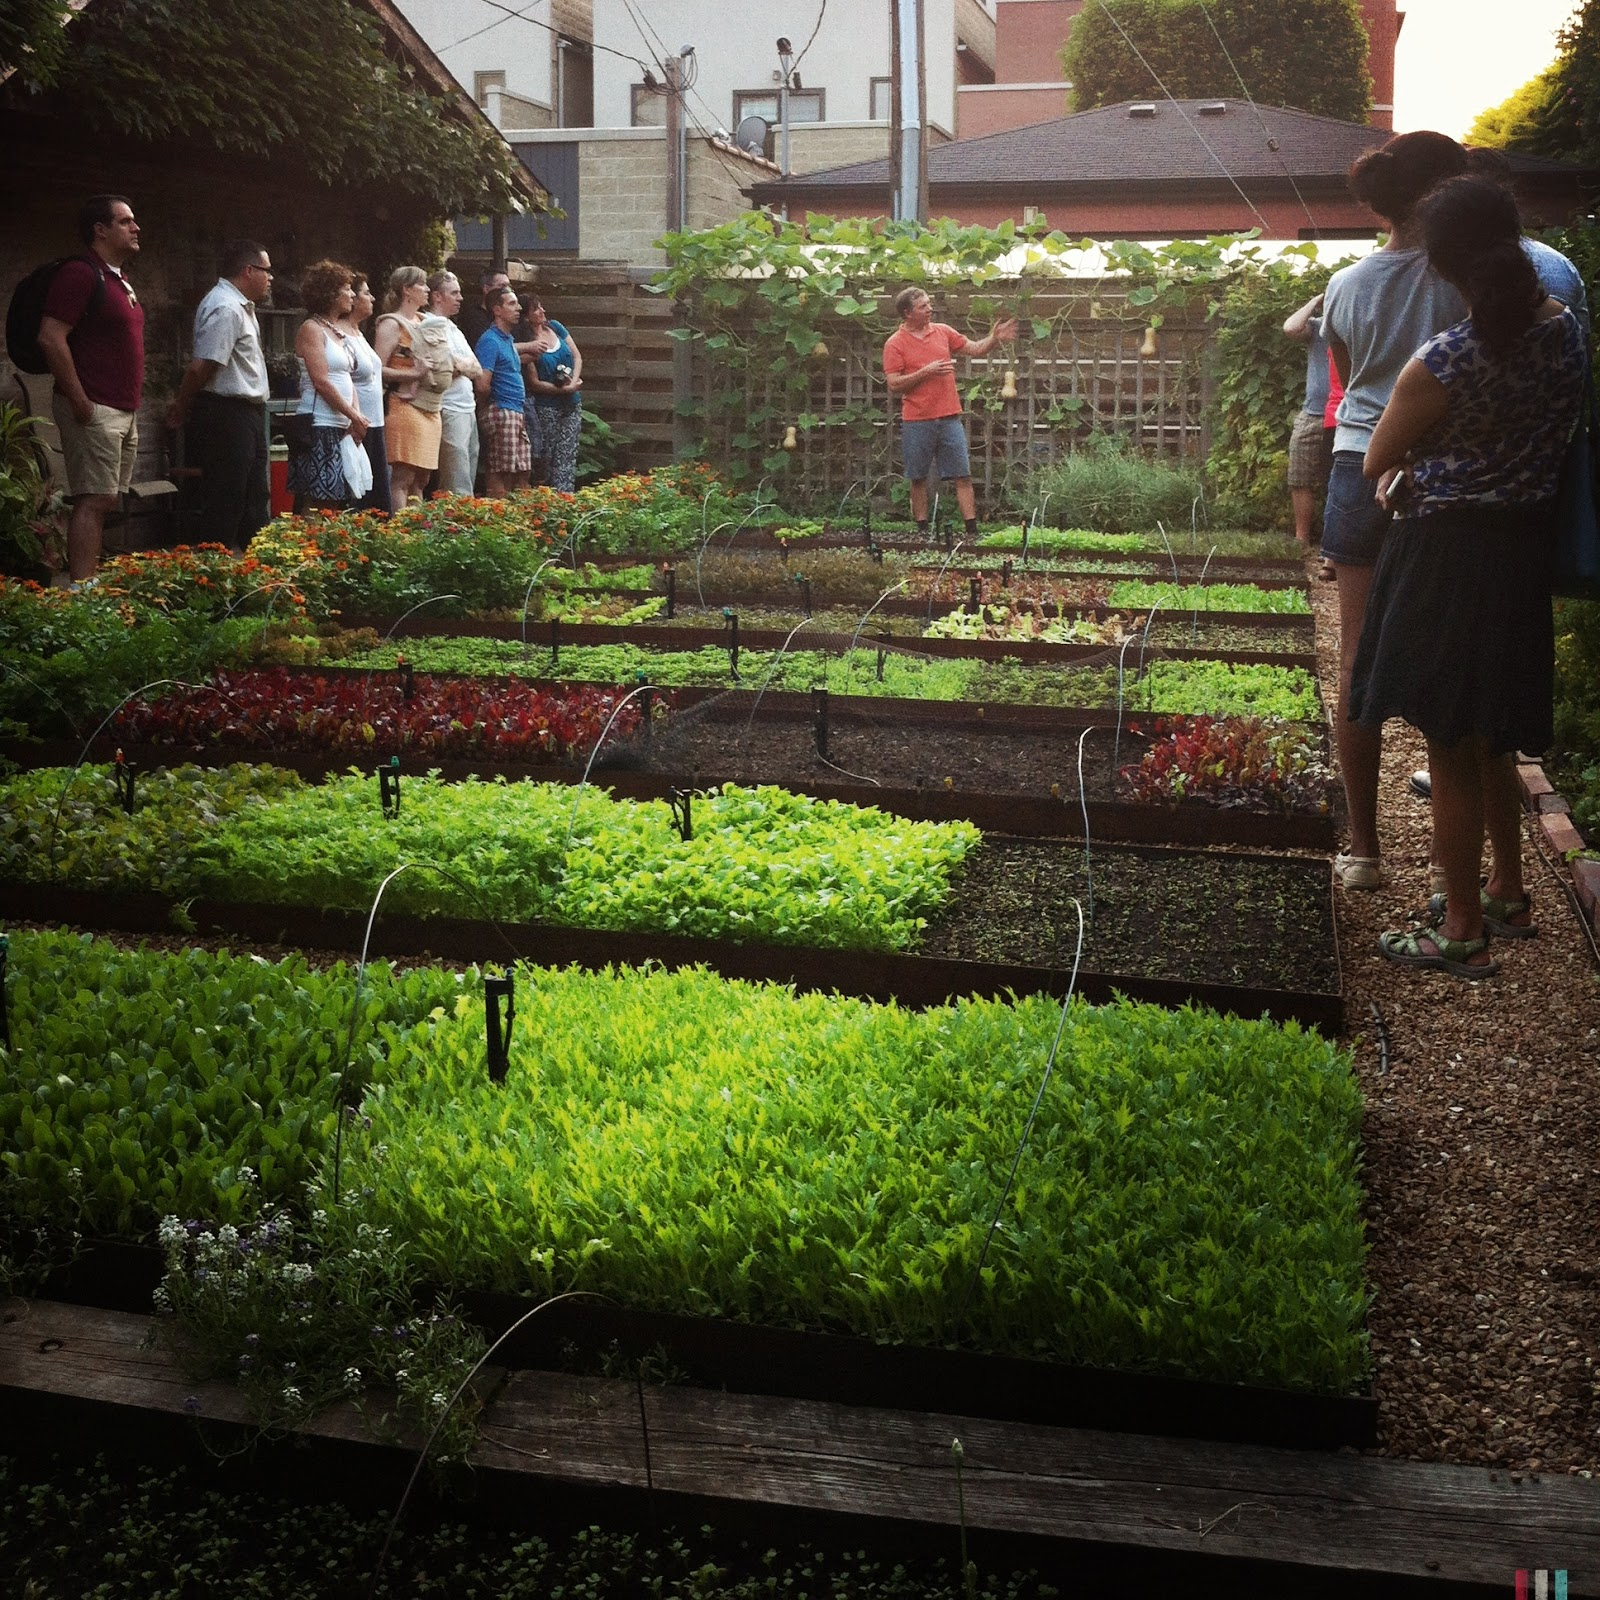 image from Planning your community garden plot